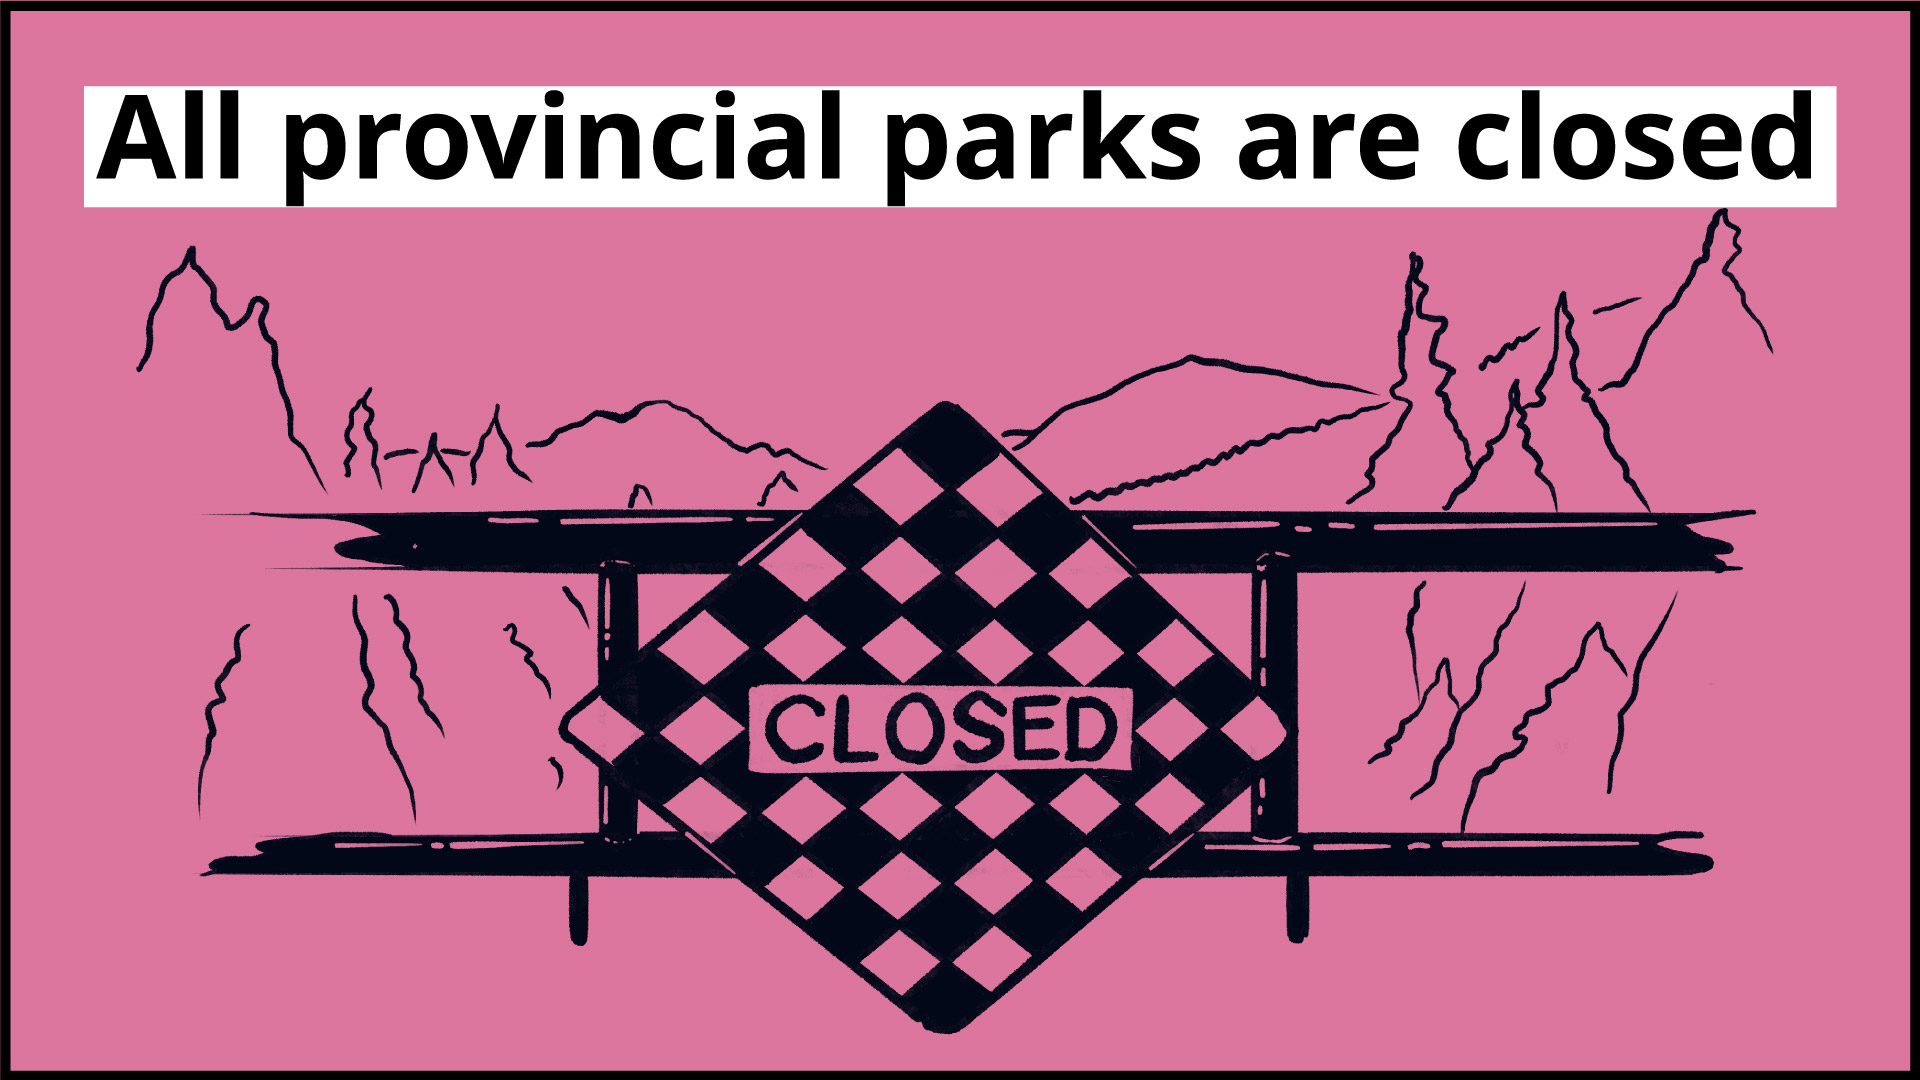 All provincial parks are closed